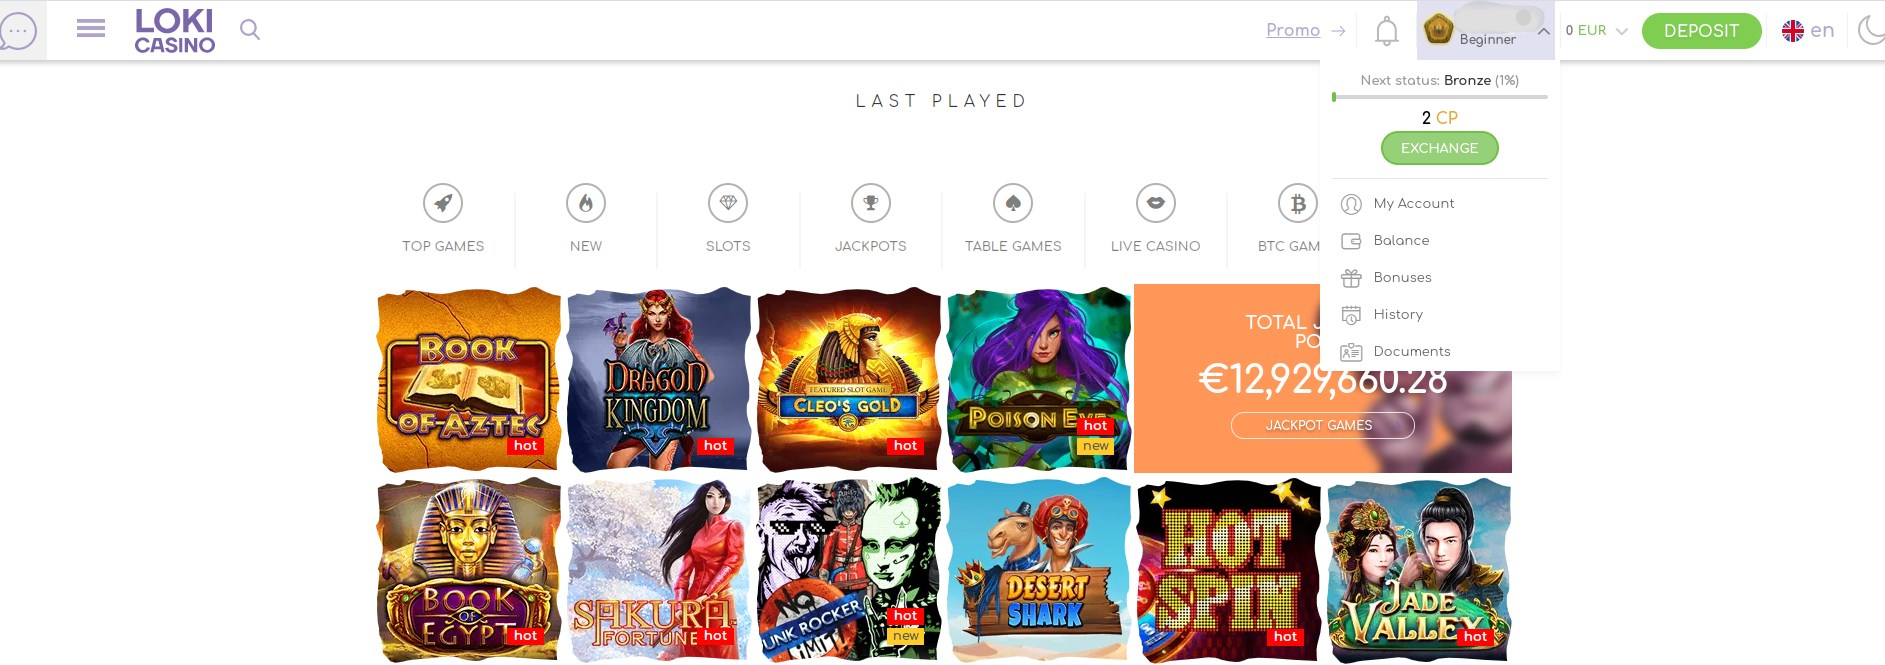 Softswiss casino loki casino account